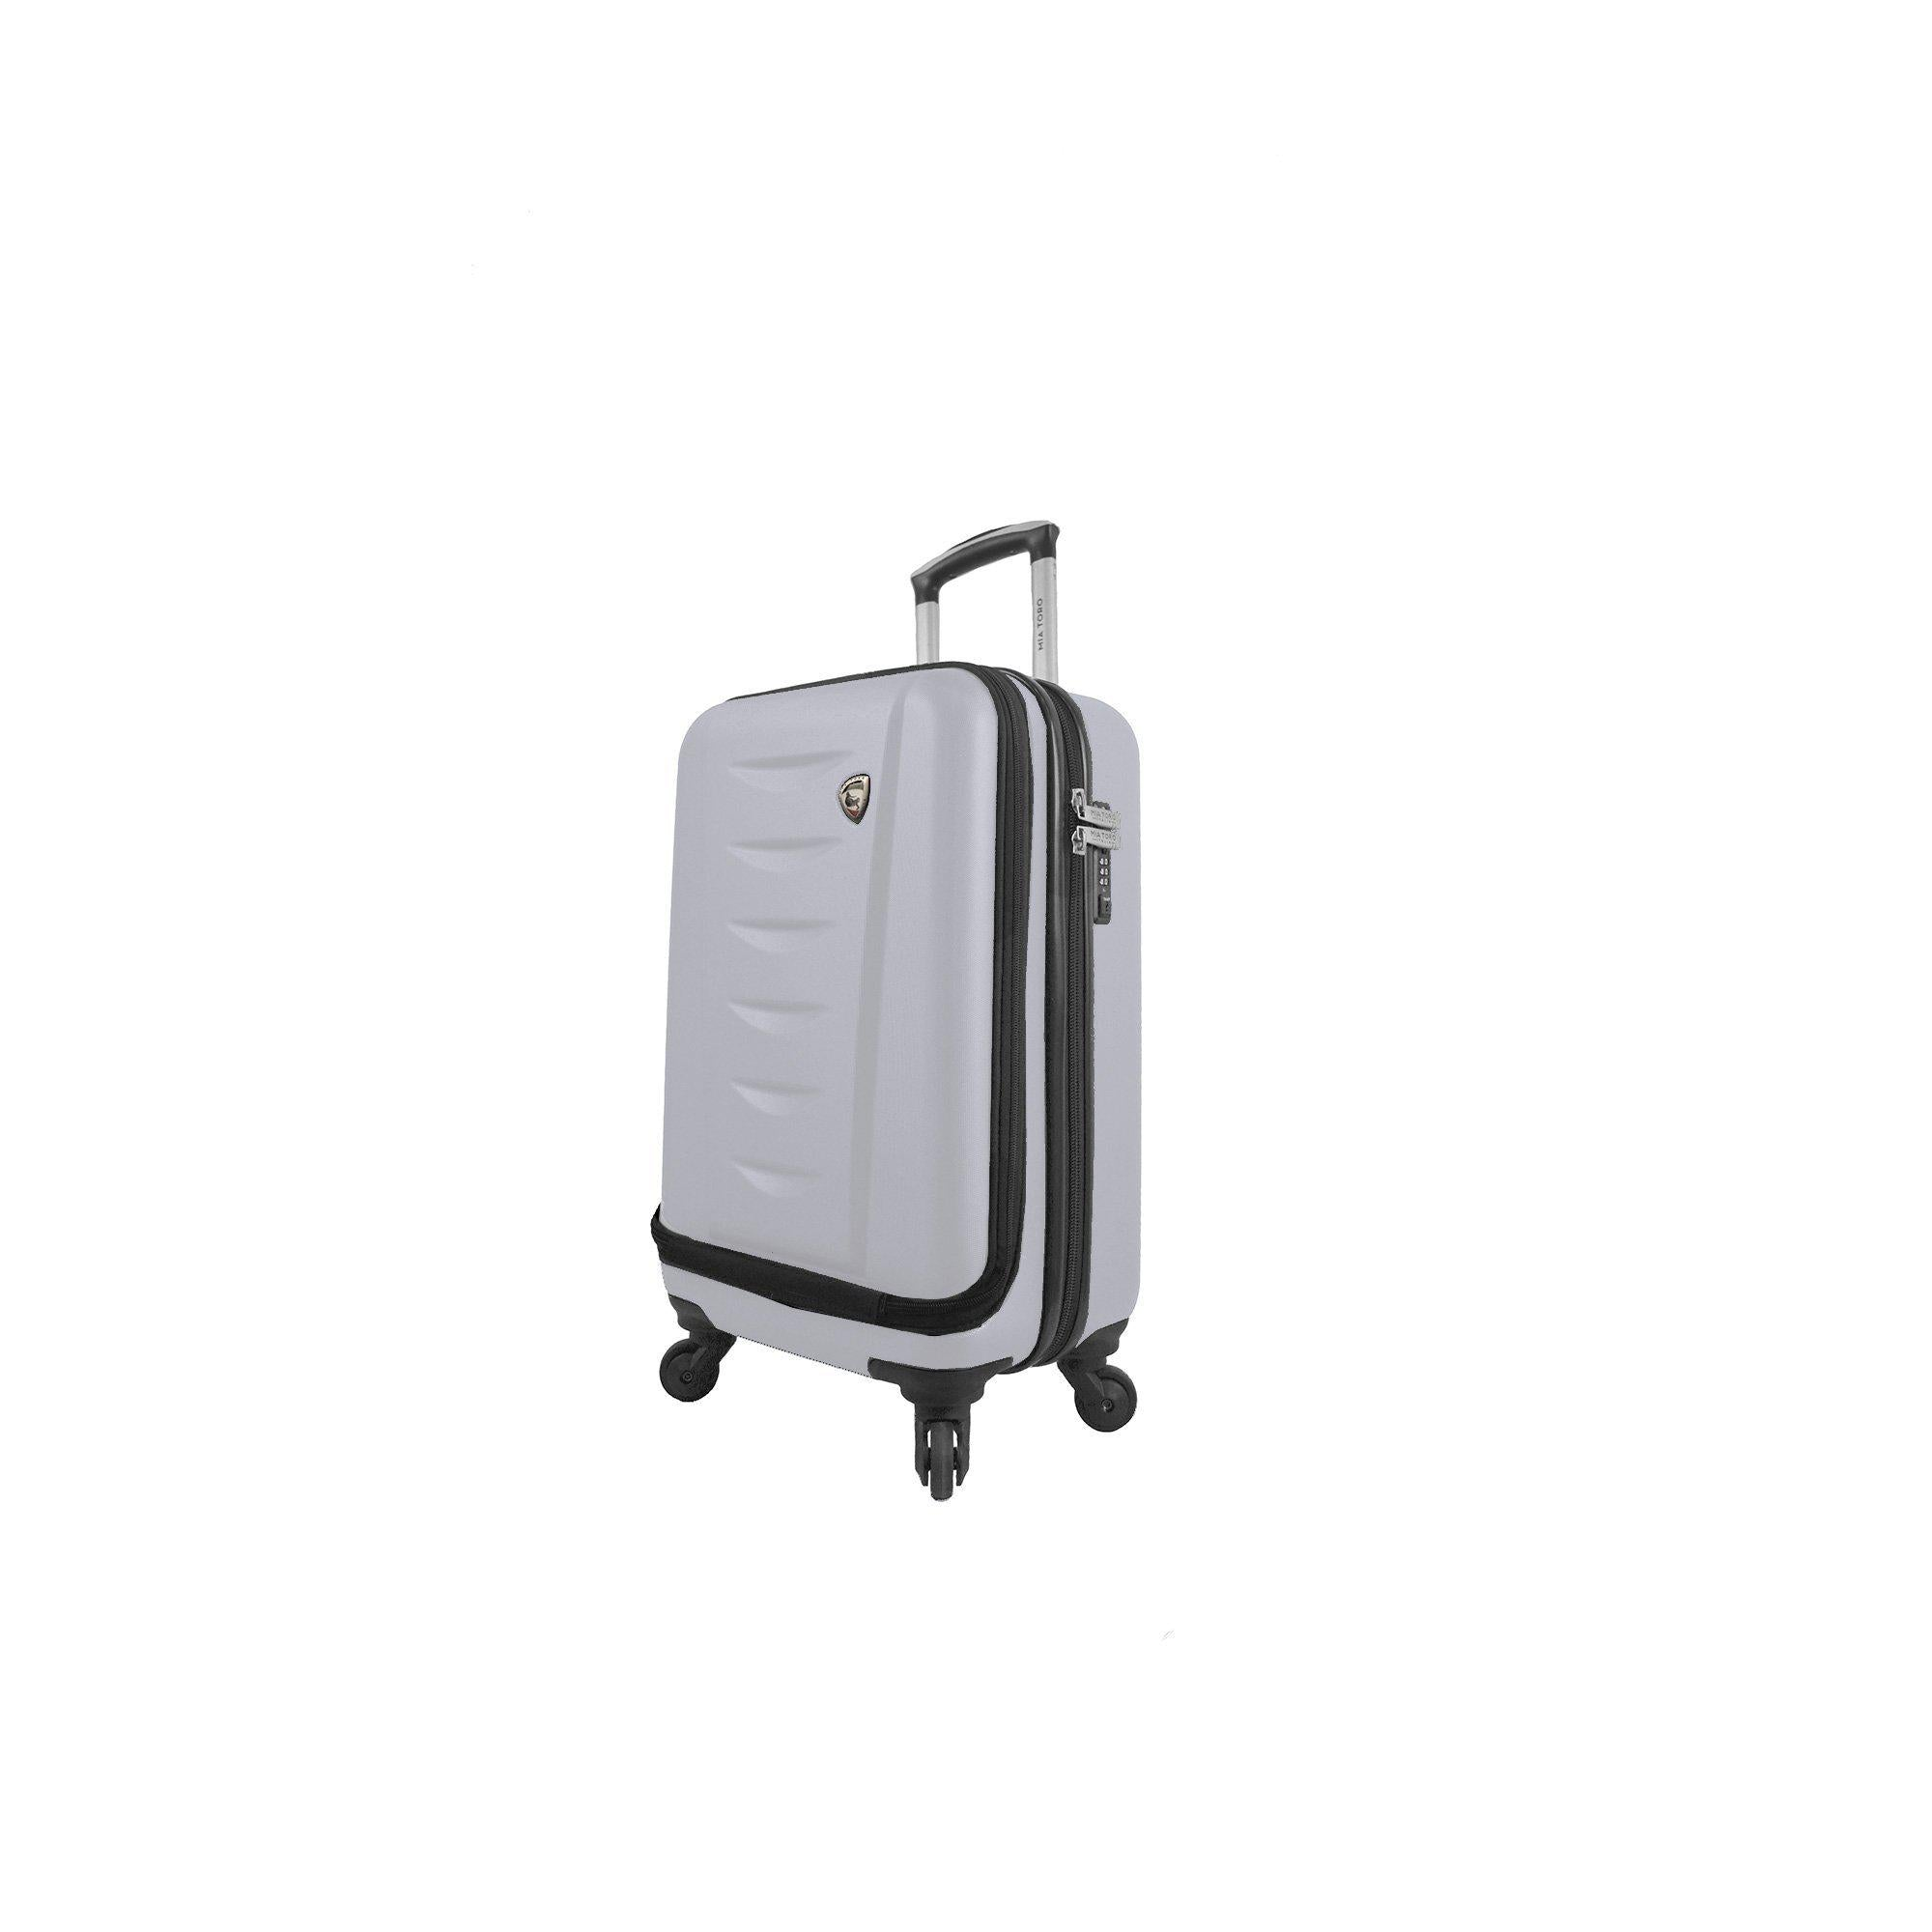 Tasca Moderna Hardside Spinner Carry-On